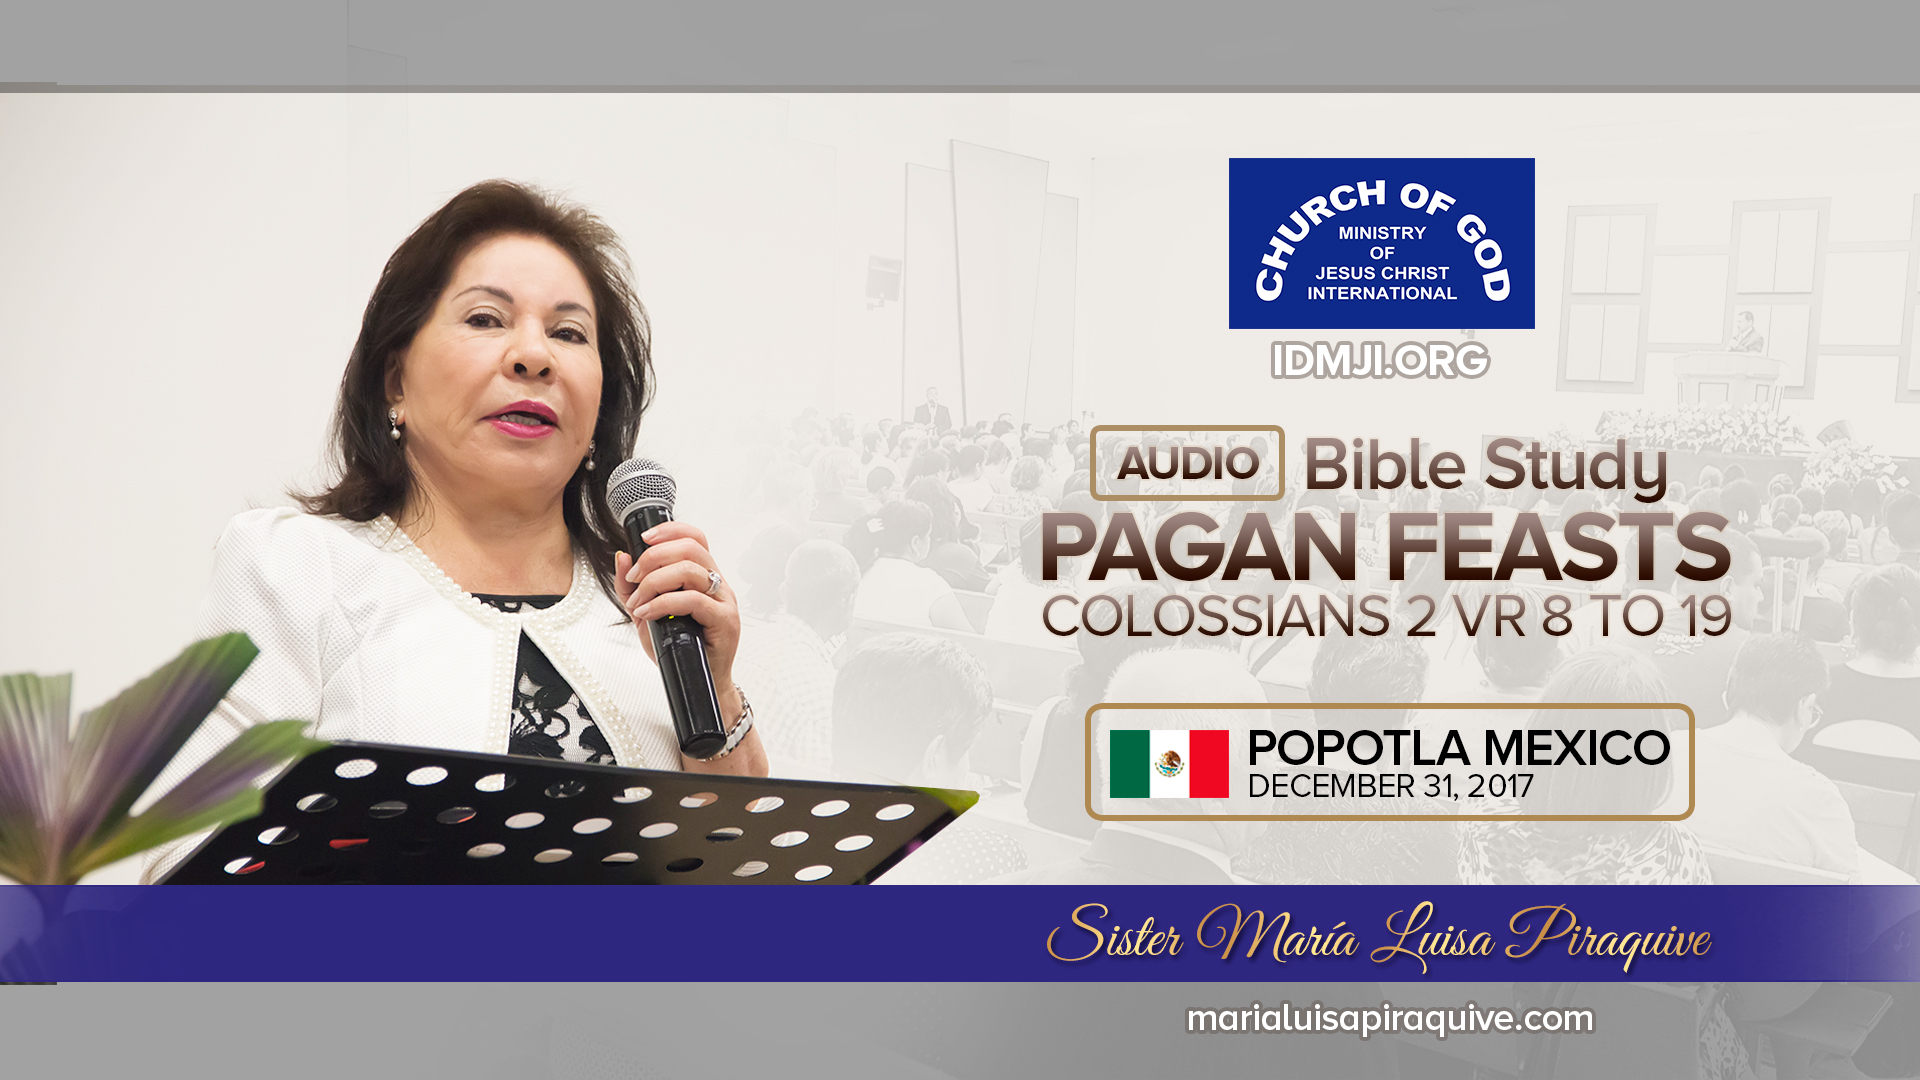 (Audio) Bible Study: Pagan Feasts